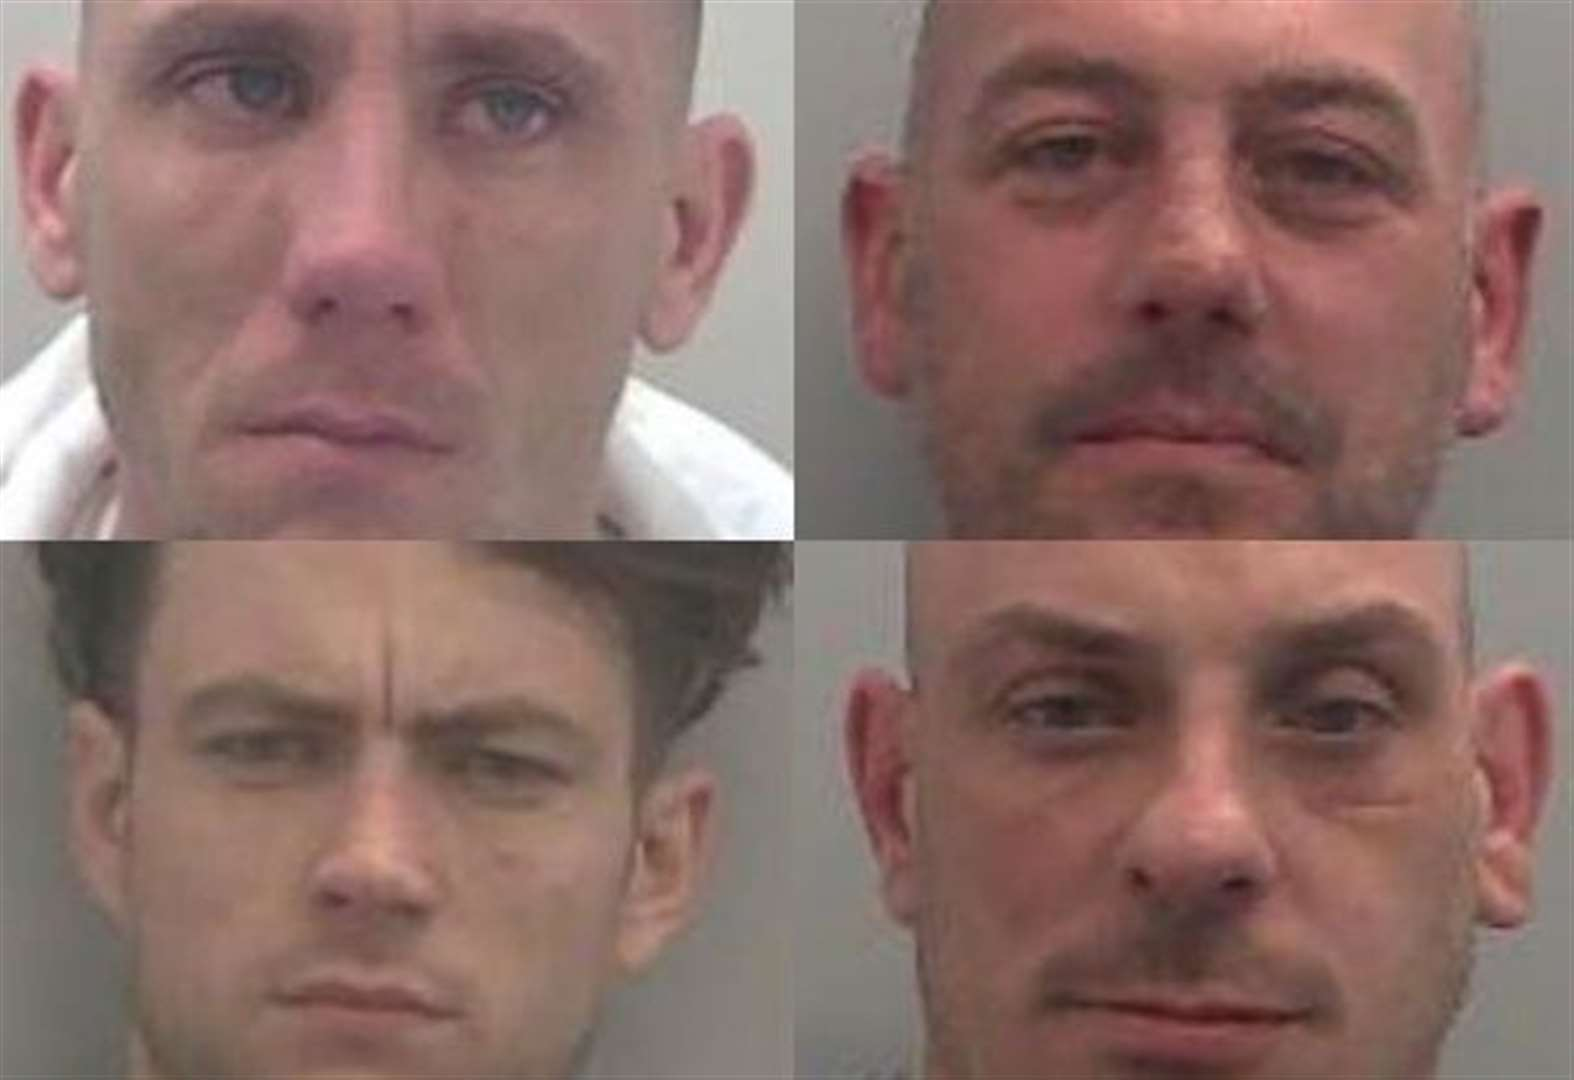 Hammer-wielding Co-op robbery gang jailed